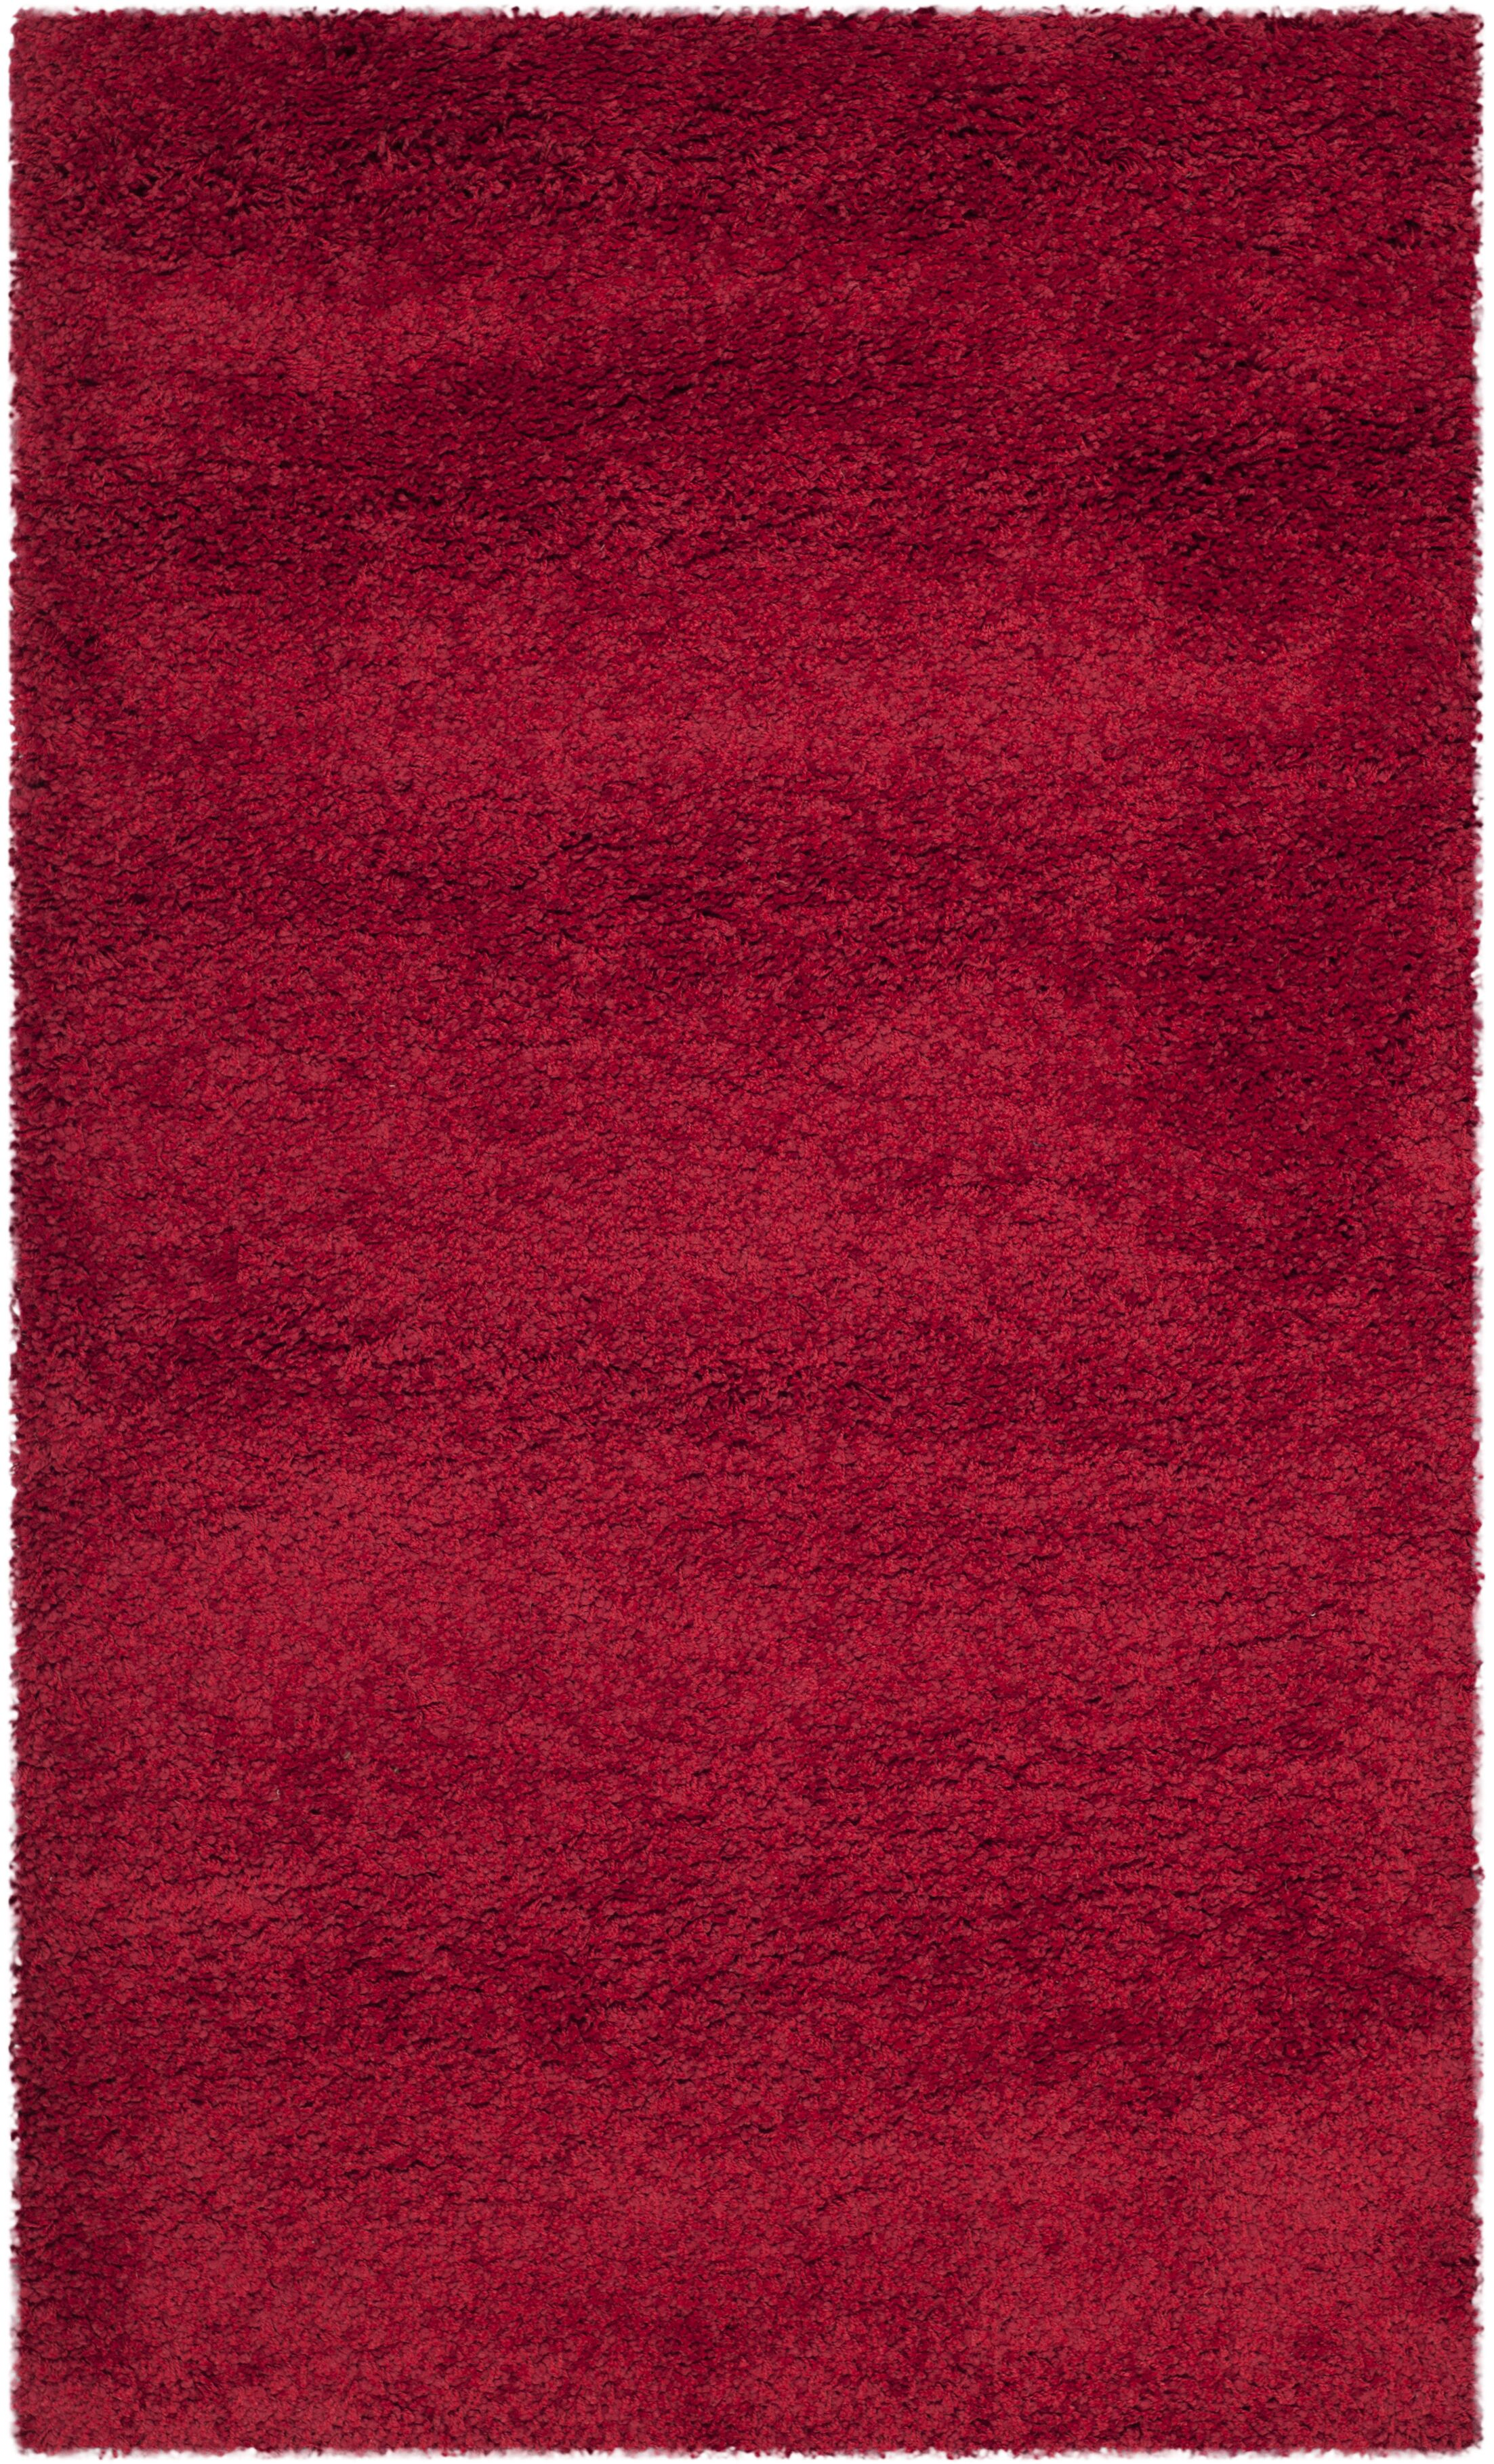 Starr Hill Rug Rug Size: Rectangle 8'6